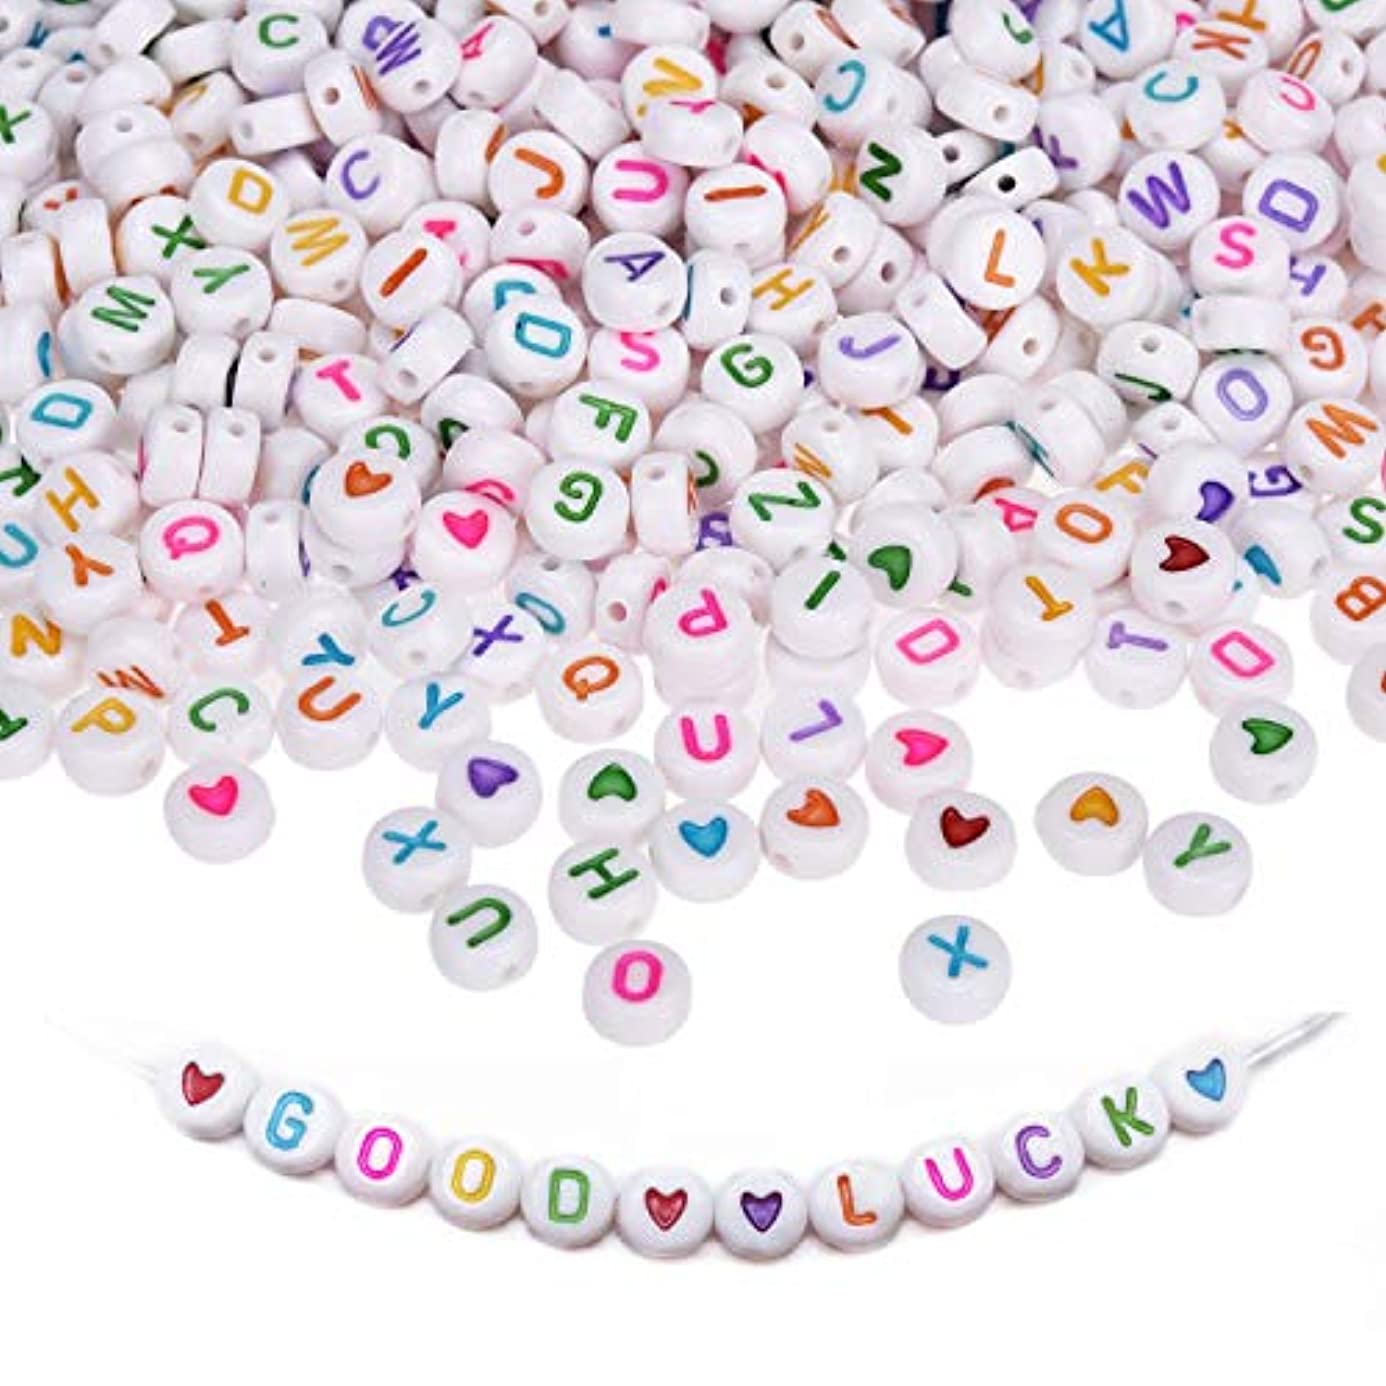 Amaney 1200 Pieces 4×7mm Round Acrylic Alphabet Letter Beads with Colourful Alphabet A-Z and Heart for Jewelry Making Bracelets Necklaces Key Chains and Kids Jewelry Each Letter Included ffx4006988